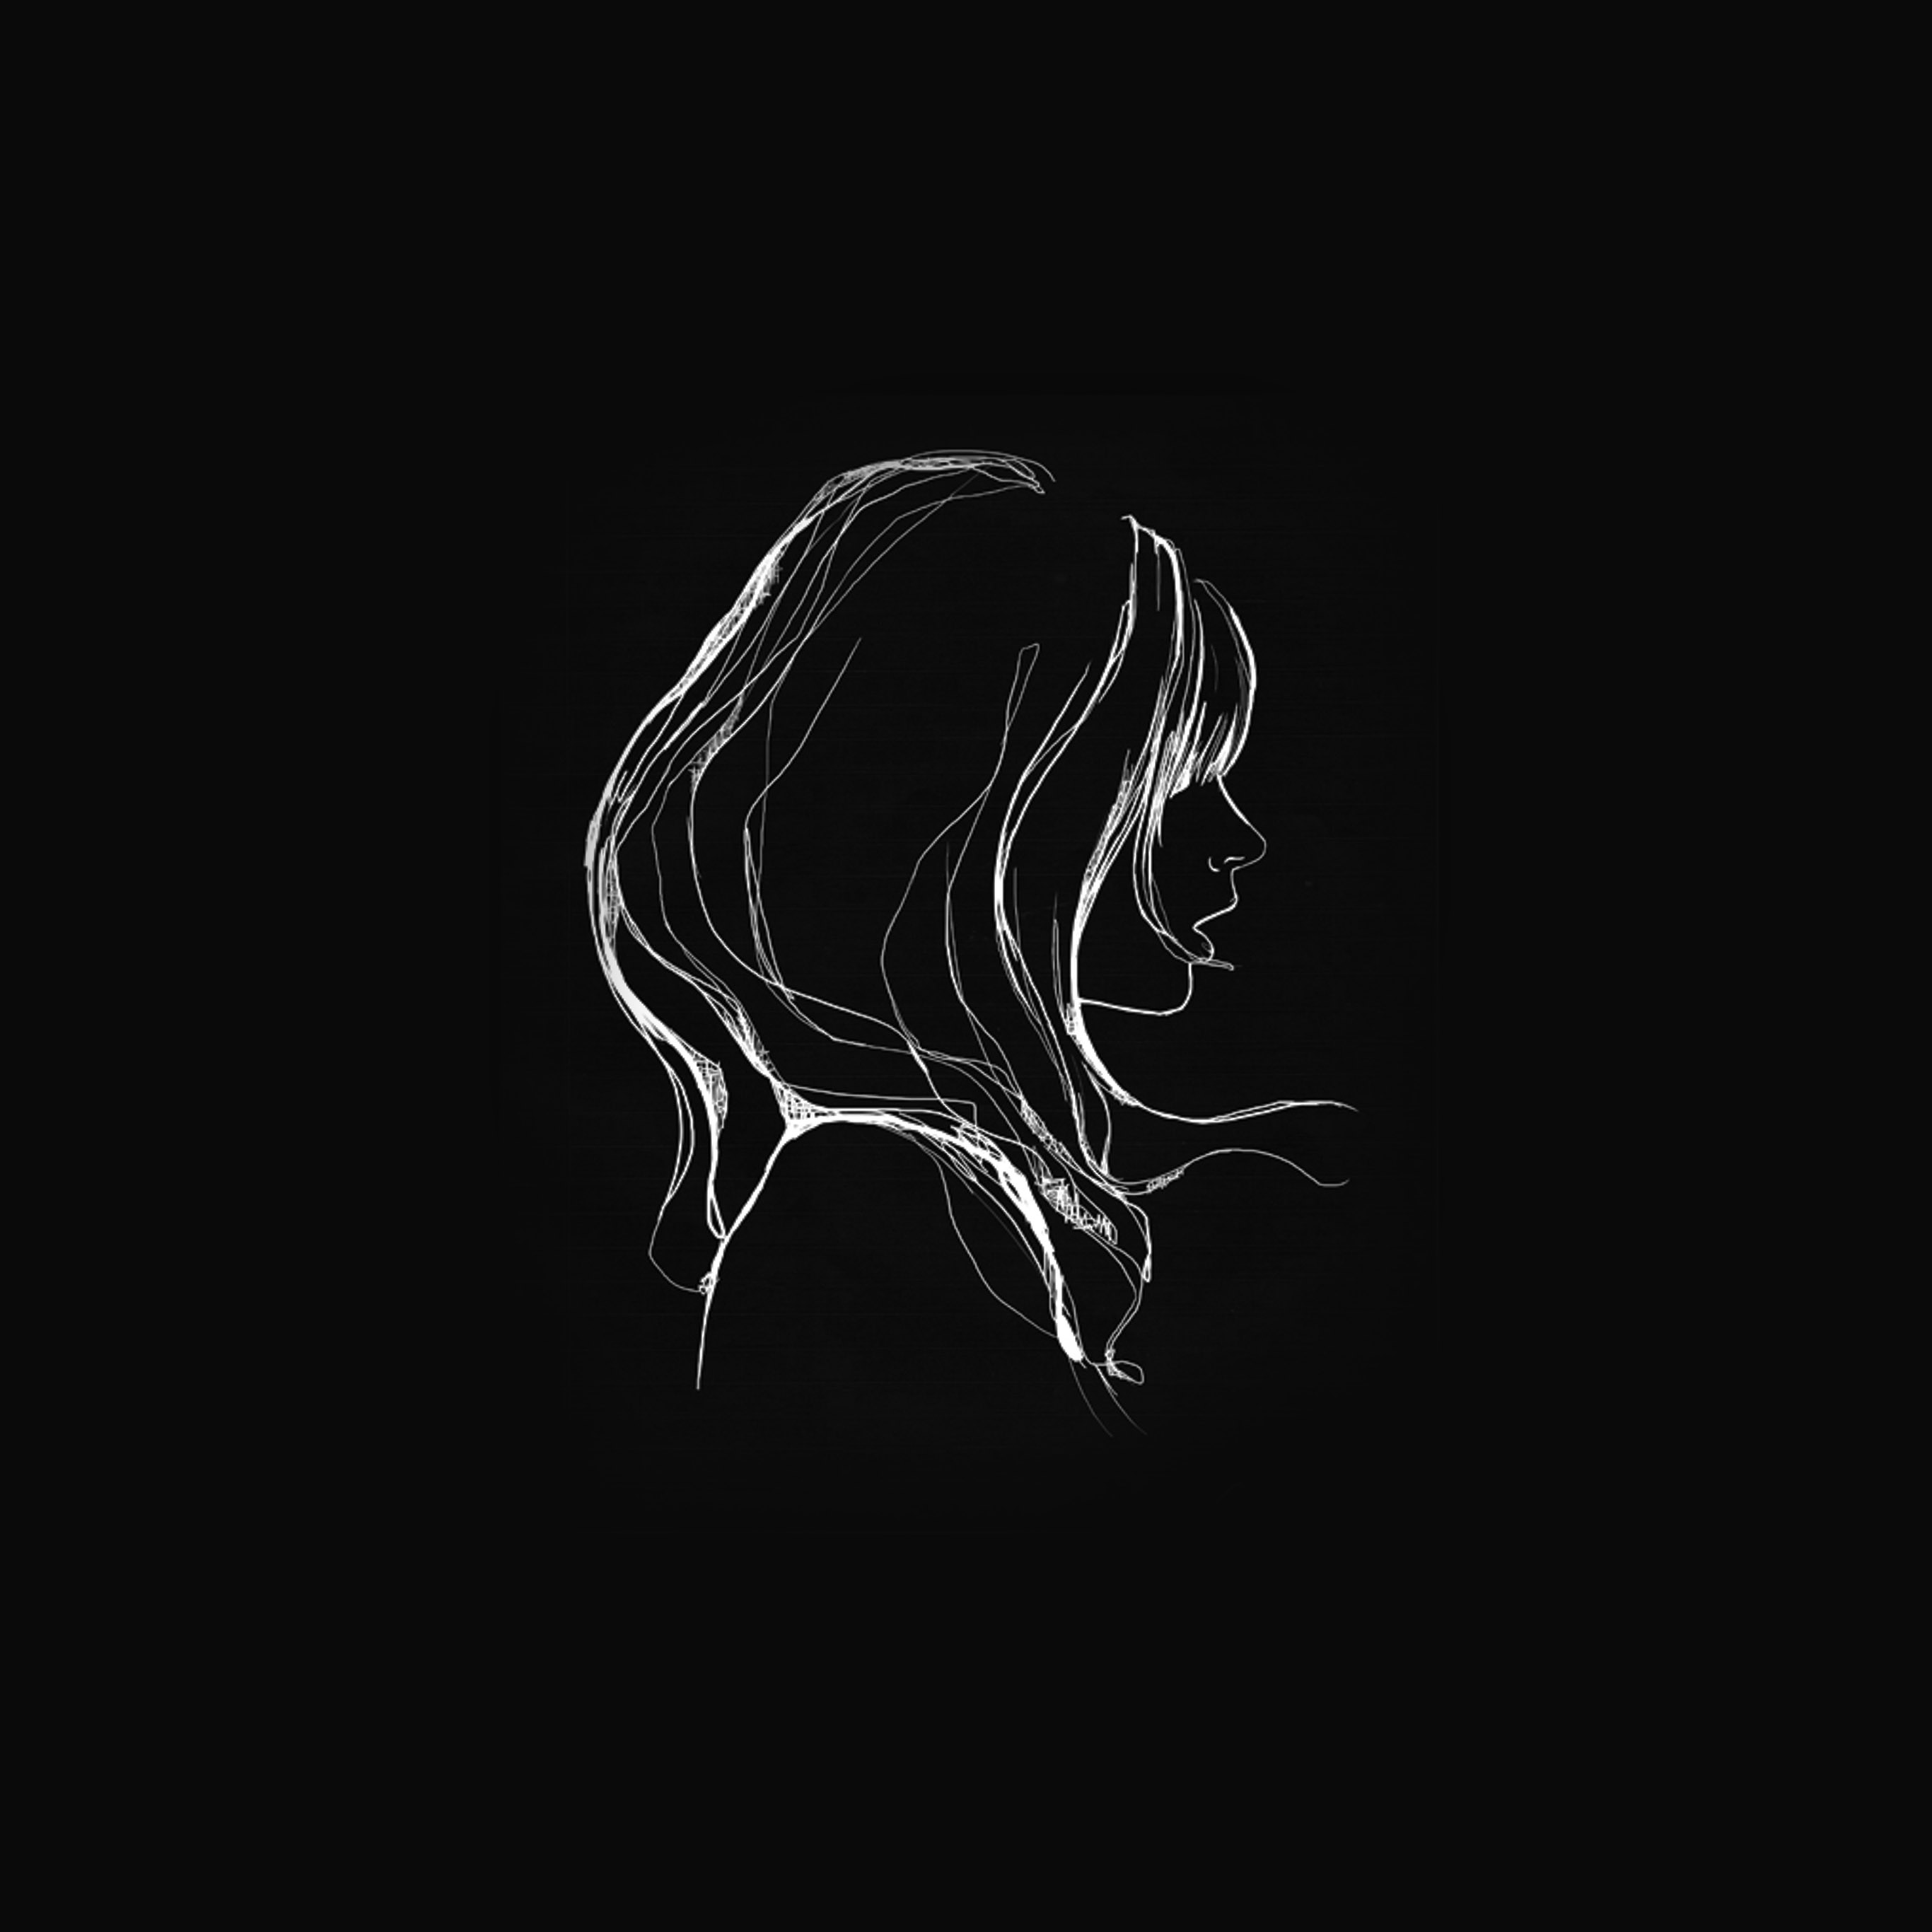 papers.co az88 drawing simple minimal girl illustration art dark 40 wallpaper